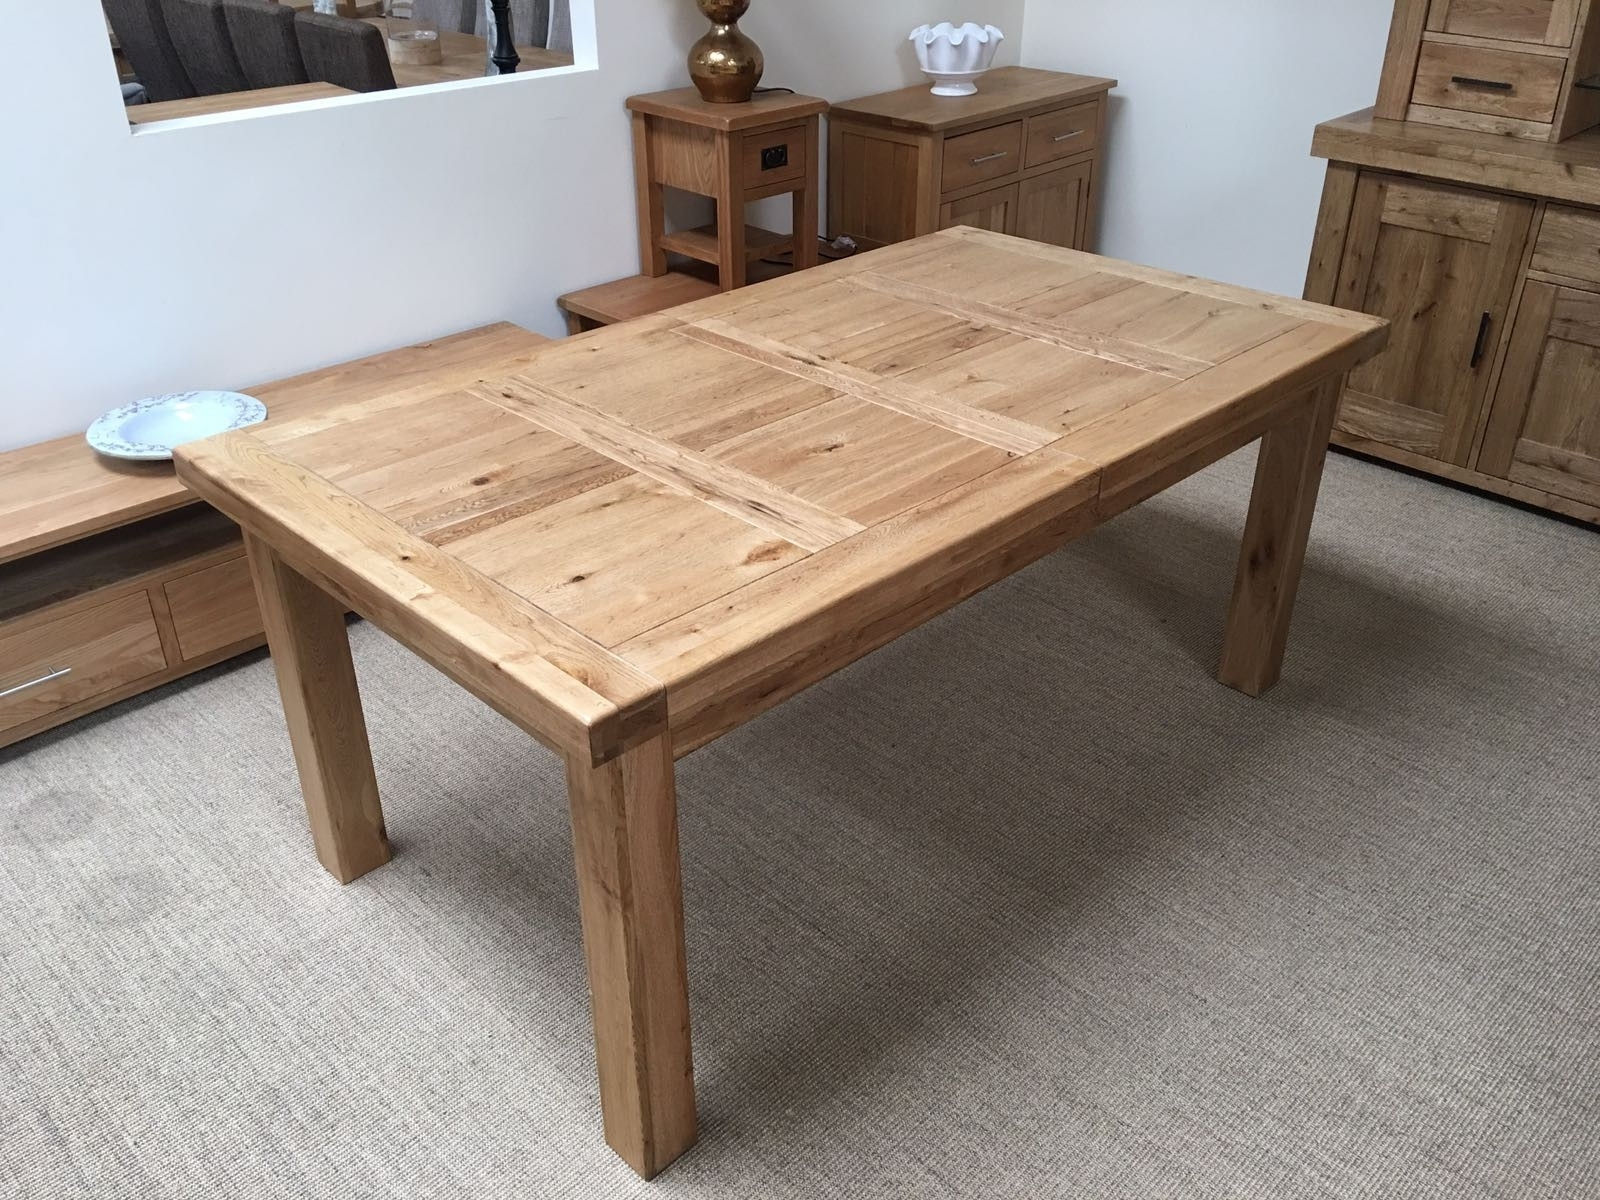 New Oak Dining Table : Ugarelay – Ideas To Care Oak Dining Table Inside Most Popular Oak Dining Tables (View 10 of 25)